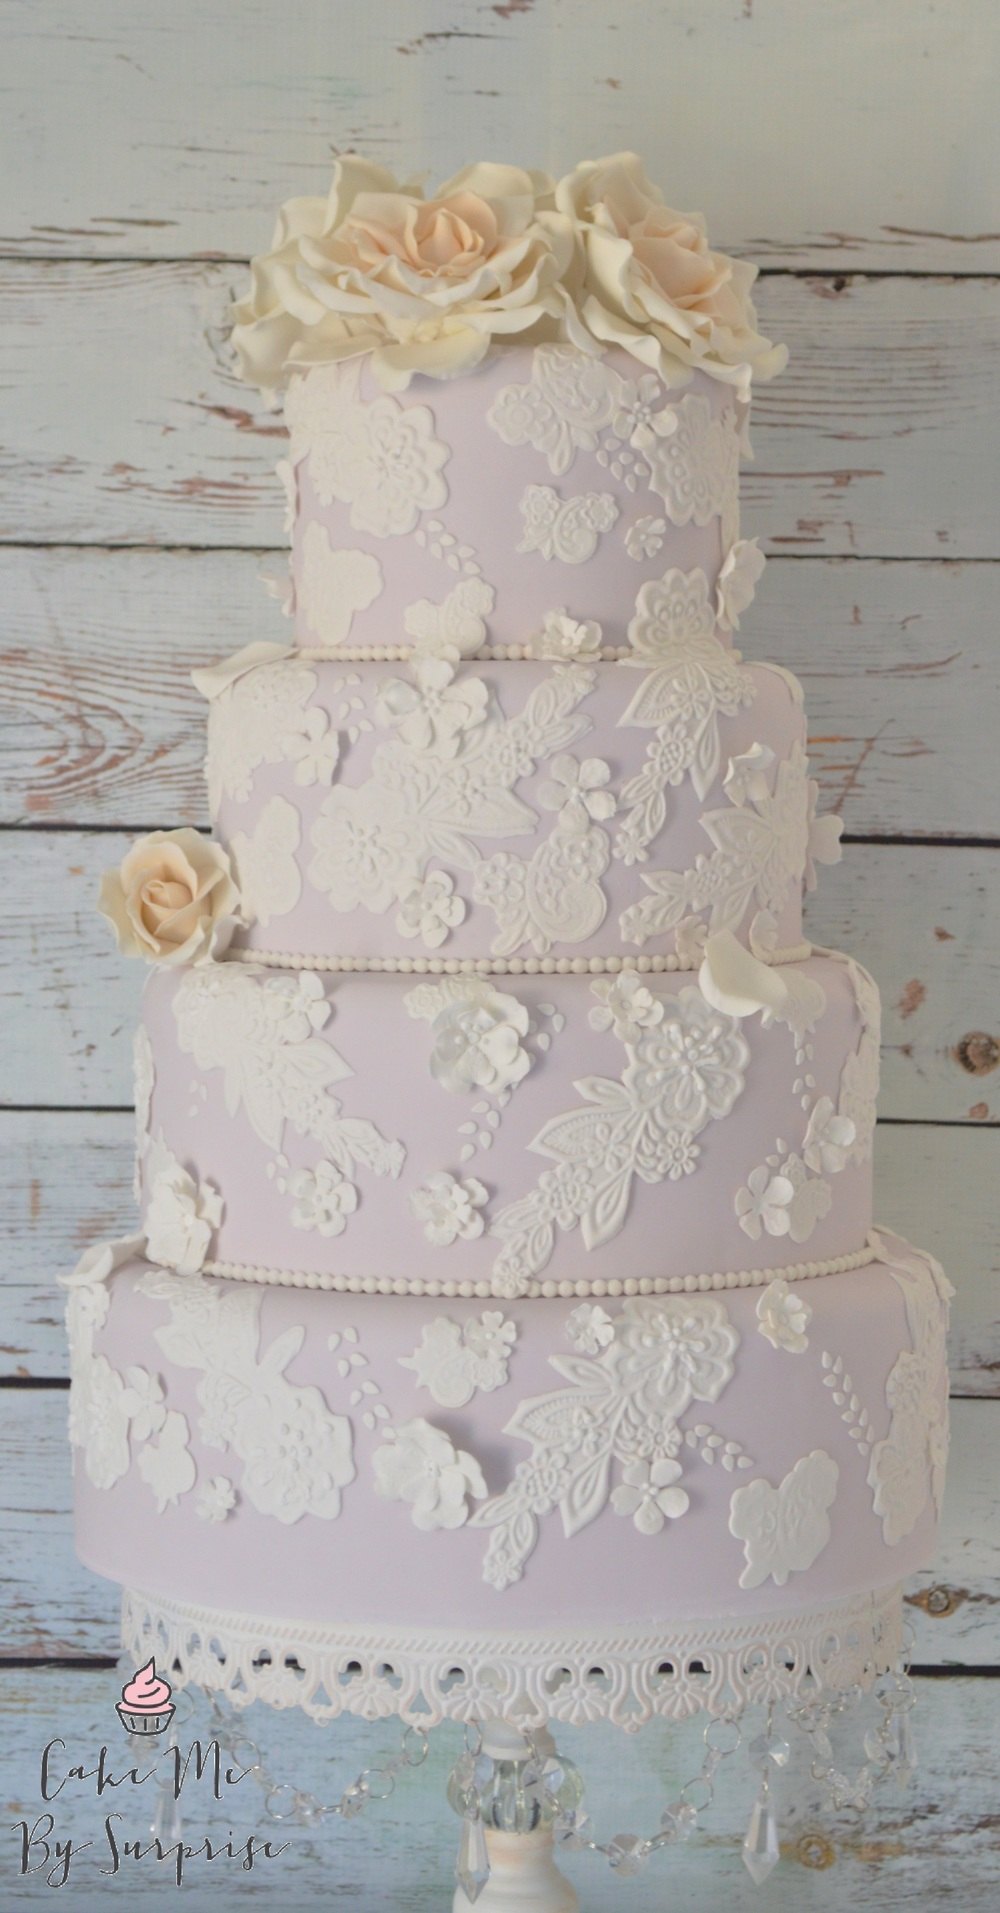 Julianne A delicate lavender wedding cake, complete with ivory centered avalanche roses, lace applique design and soft blossoms with pearl piping.  Serves 134 £740